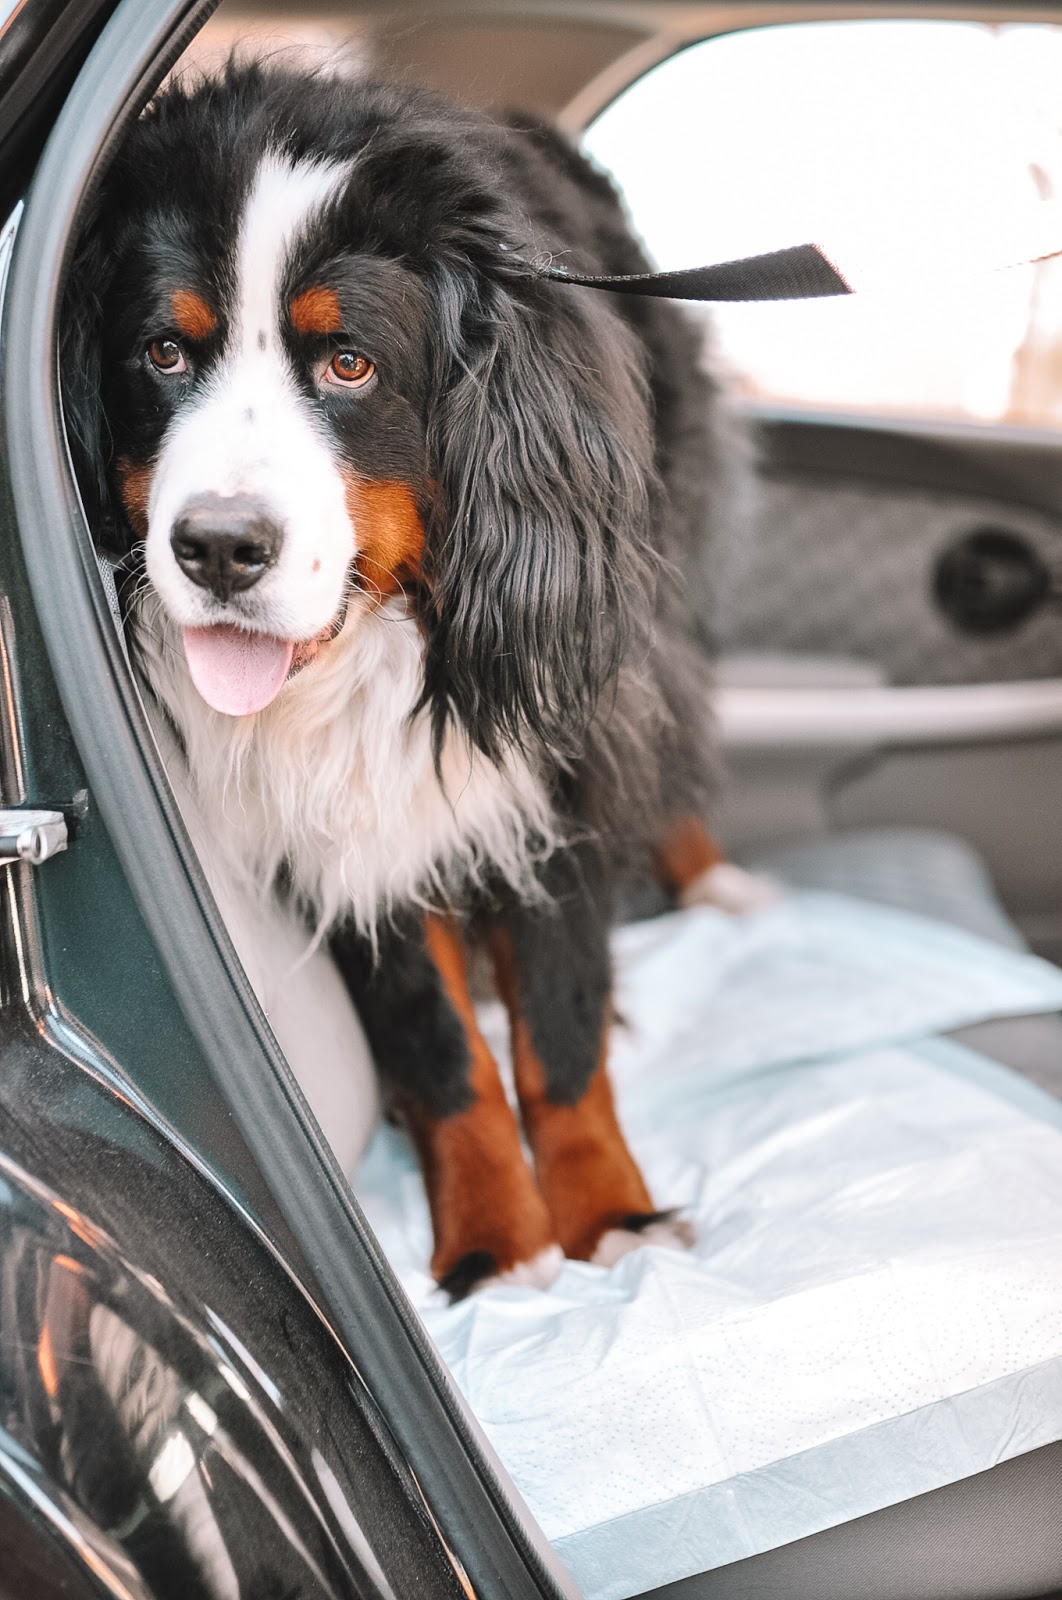 Kylo the Mountain Dog uses Hartz Dog Pads when riding in the car